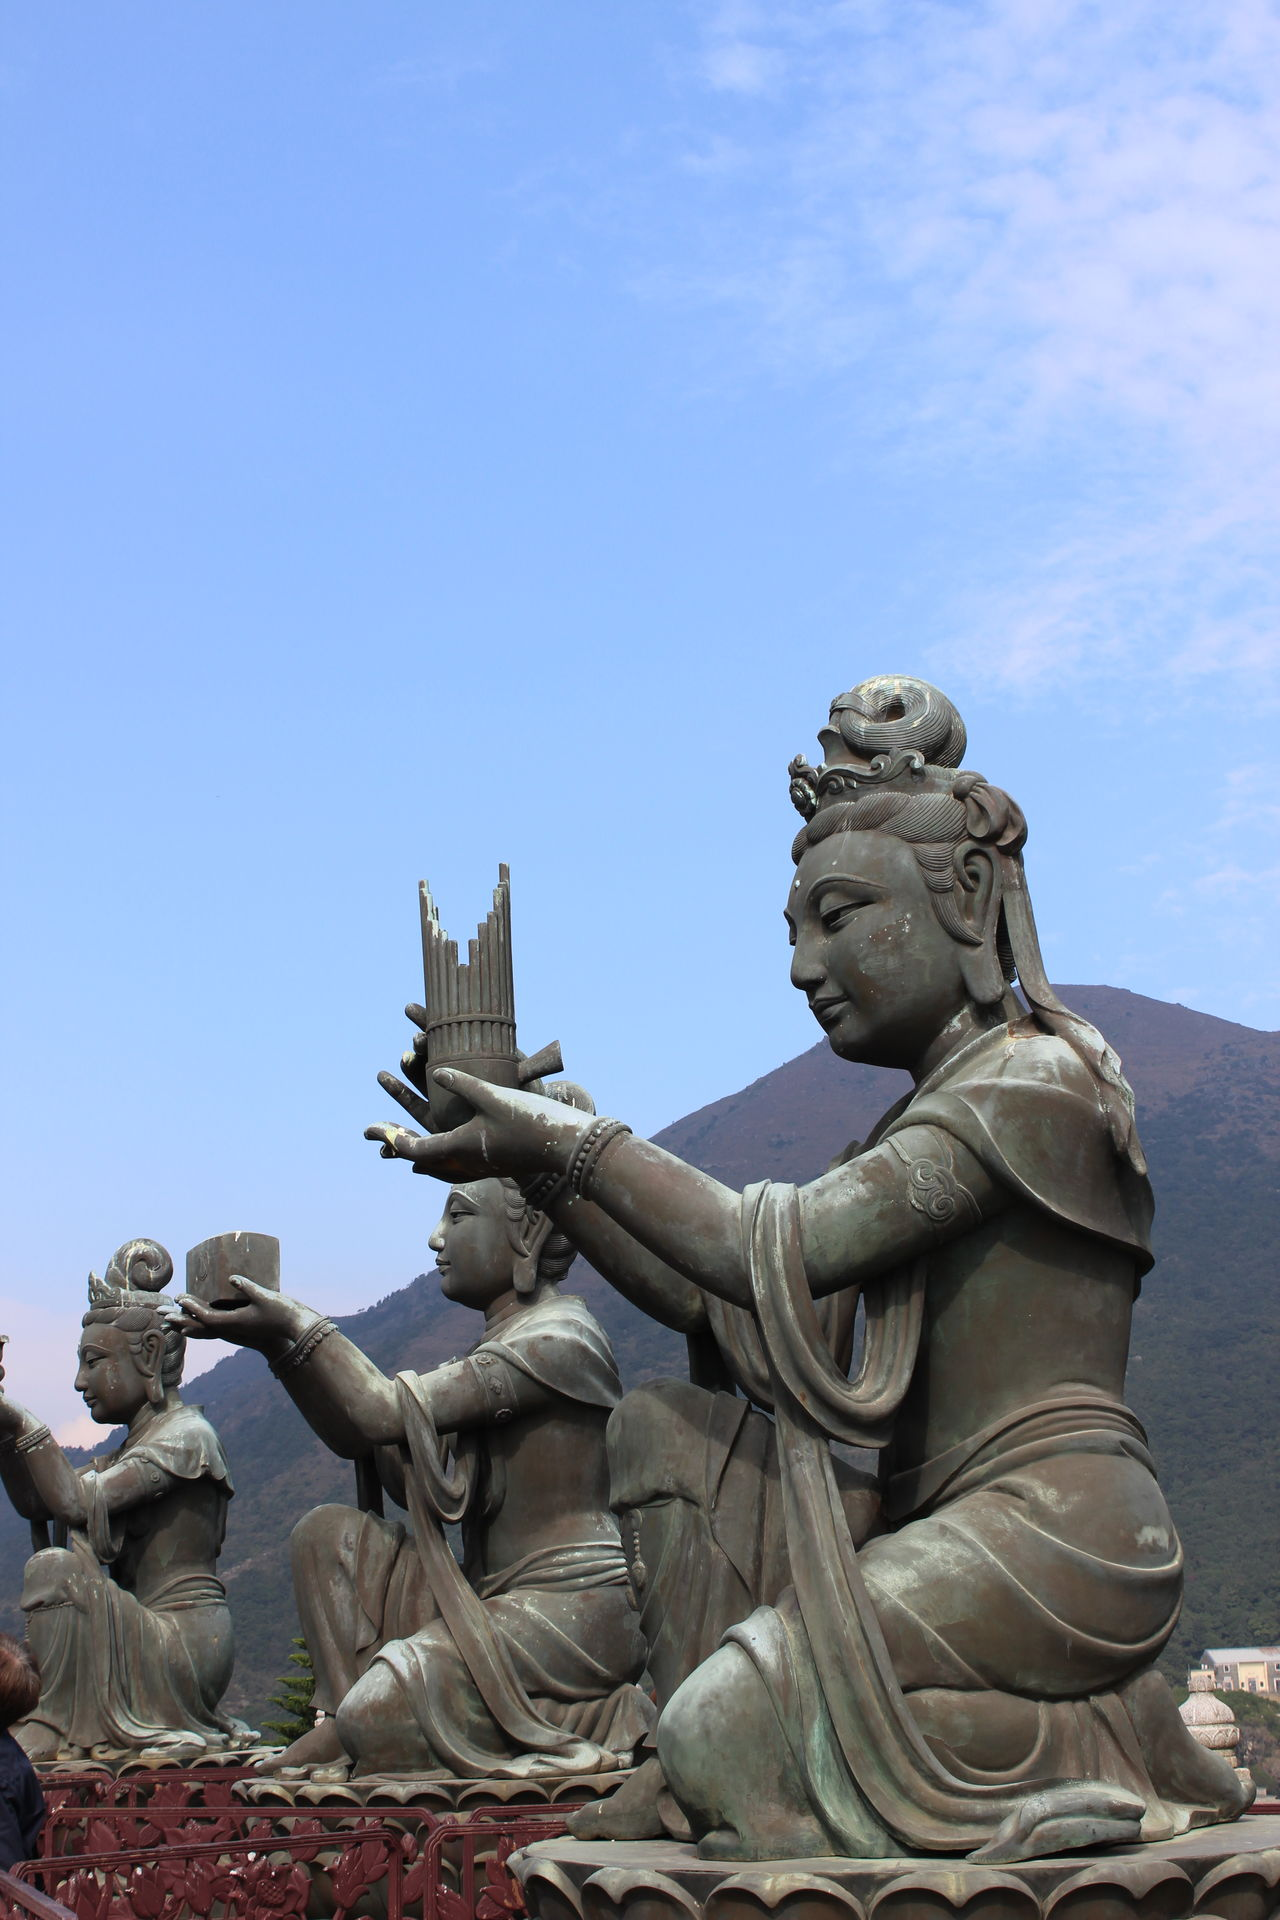 Statue Sculpture Clear Sky No People Religion Sword Sky Outdoors Day Travel Destinations Mountain Travel Photography Cloud - Sky HongKong Tian Tan Buddha (Giant Buddha) 天壇大佛 Young Women Statue Beauty In Nature Close-up Headshot